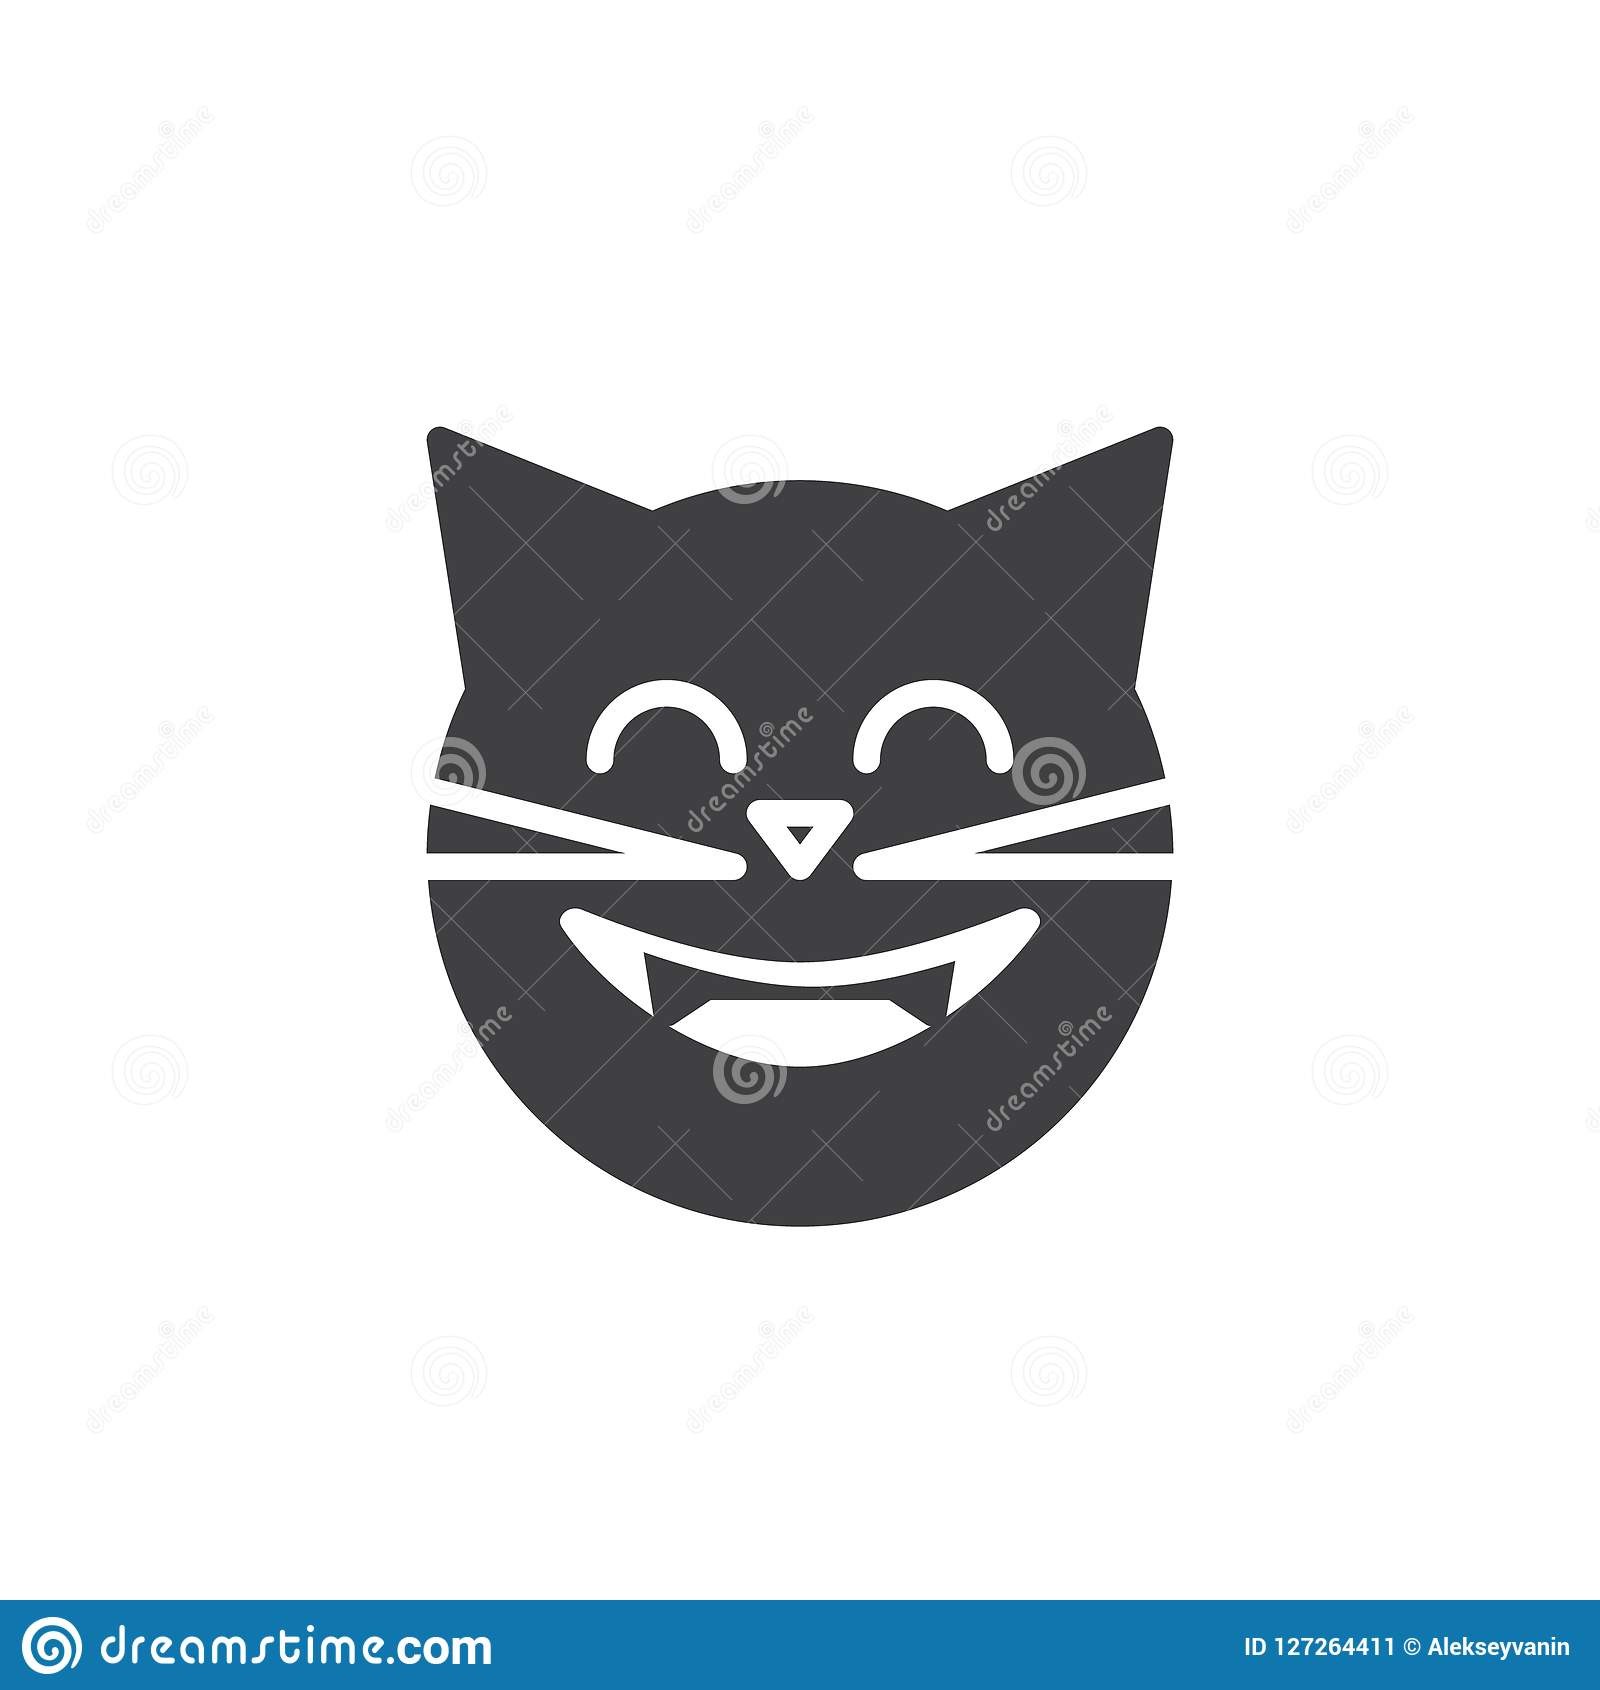 Laughing cat stock illustrations 689 laughing cat stock illustrations vectors clipart dreamstime